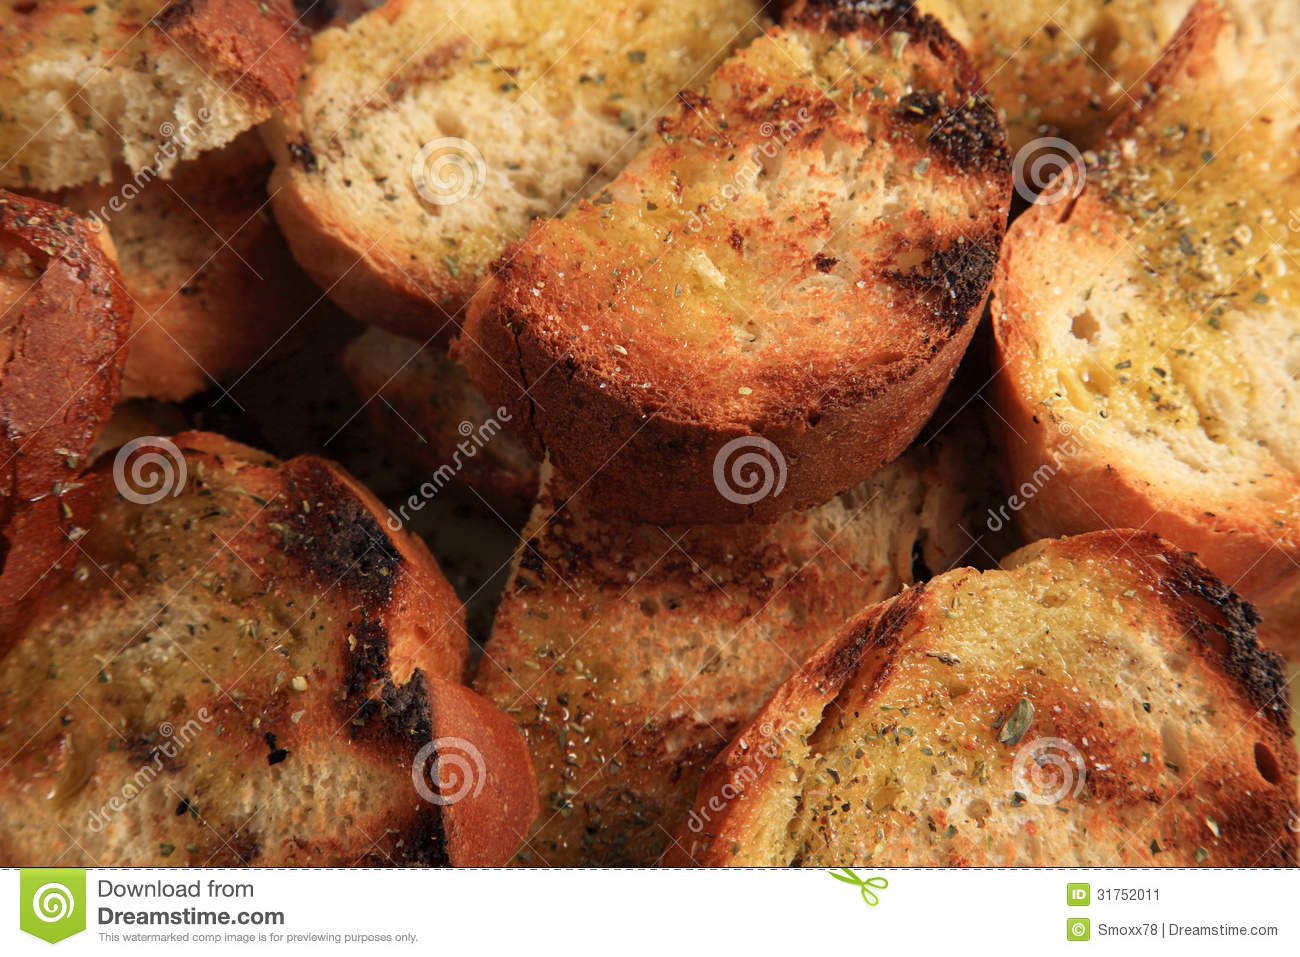 Grilled Bread Stock Image - Image: 31752011